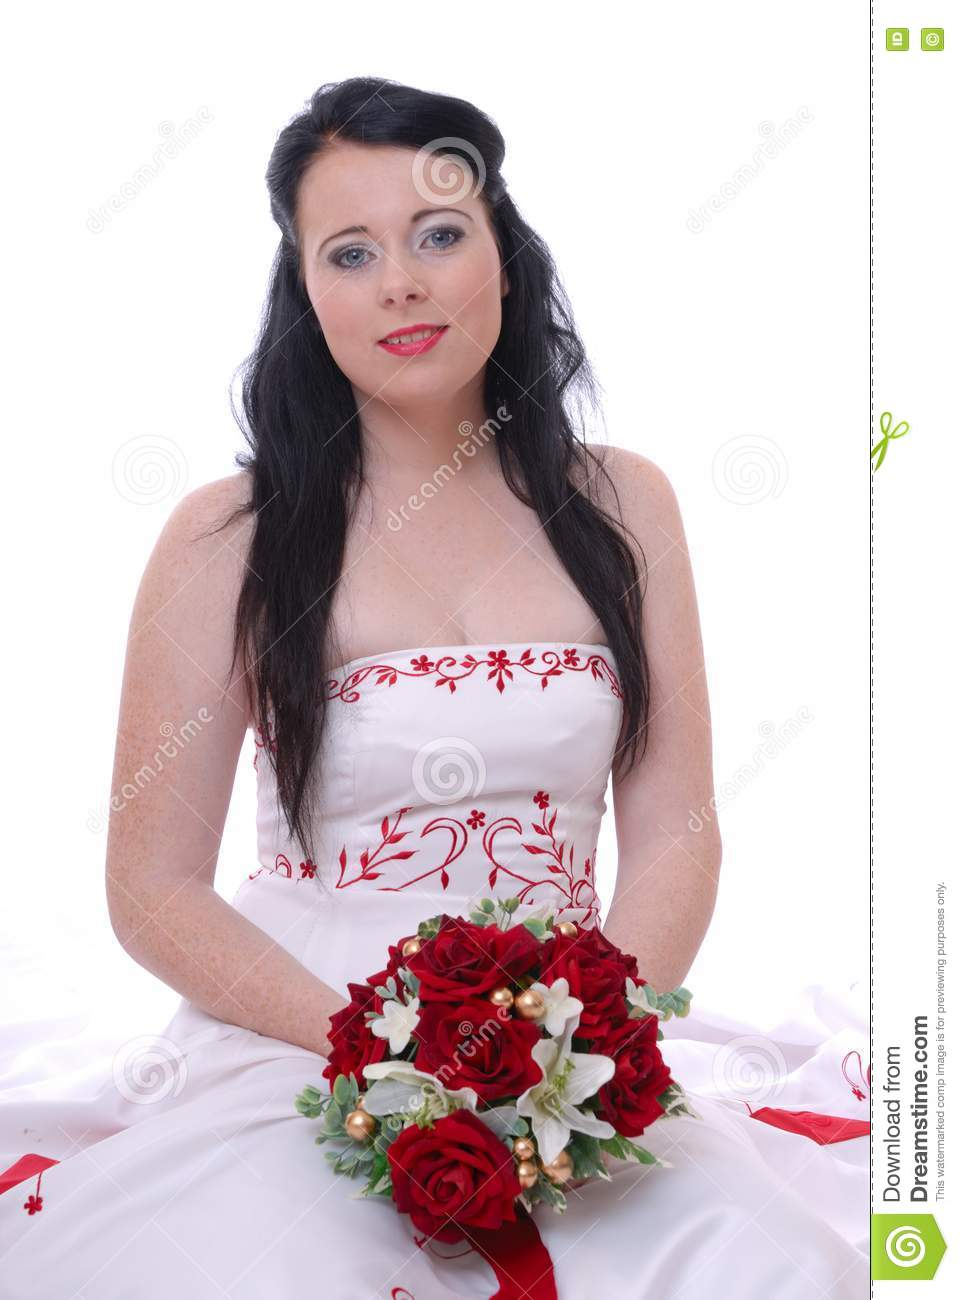 Cute Young Bride In White And Red Wedding Dress Stock Photos Image